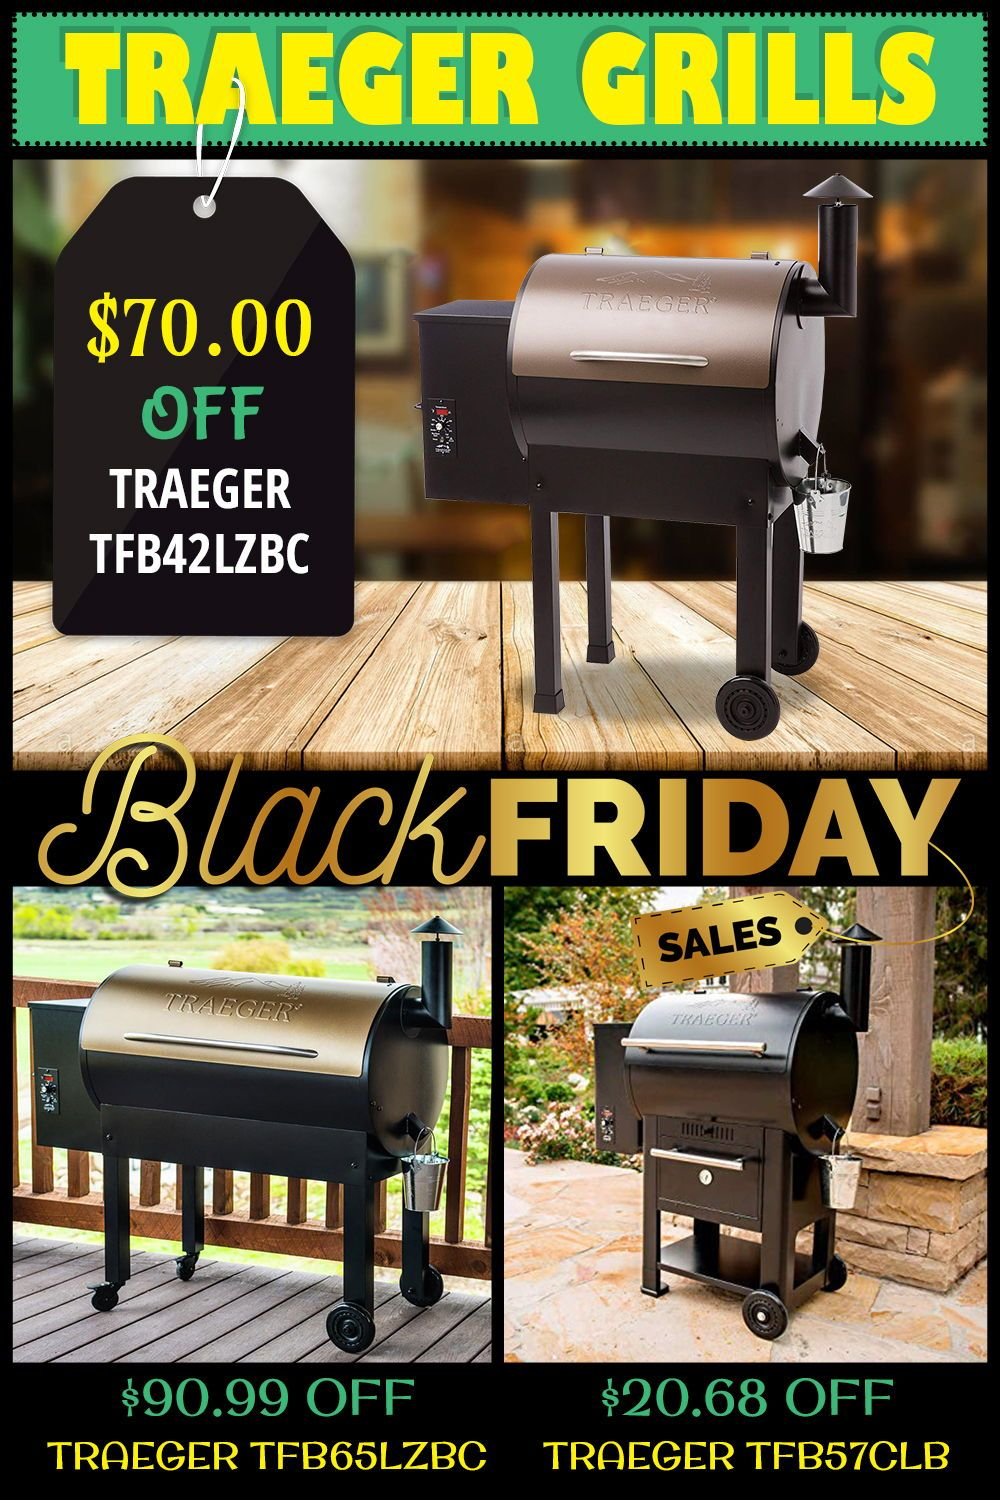 Grills Forever Top Rated Grills Smokers Reviews And Bbq Recipes Grilling Traeger Grill Wood Pellet Grills